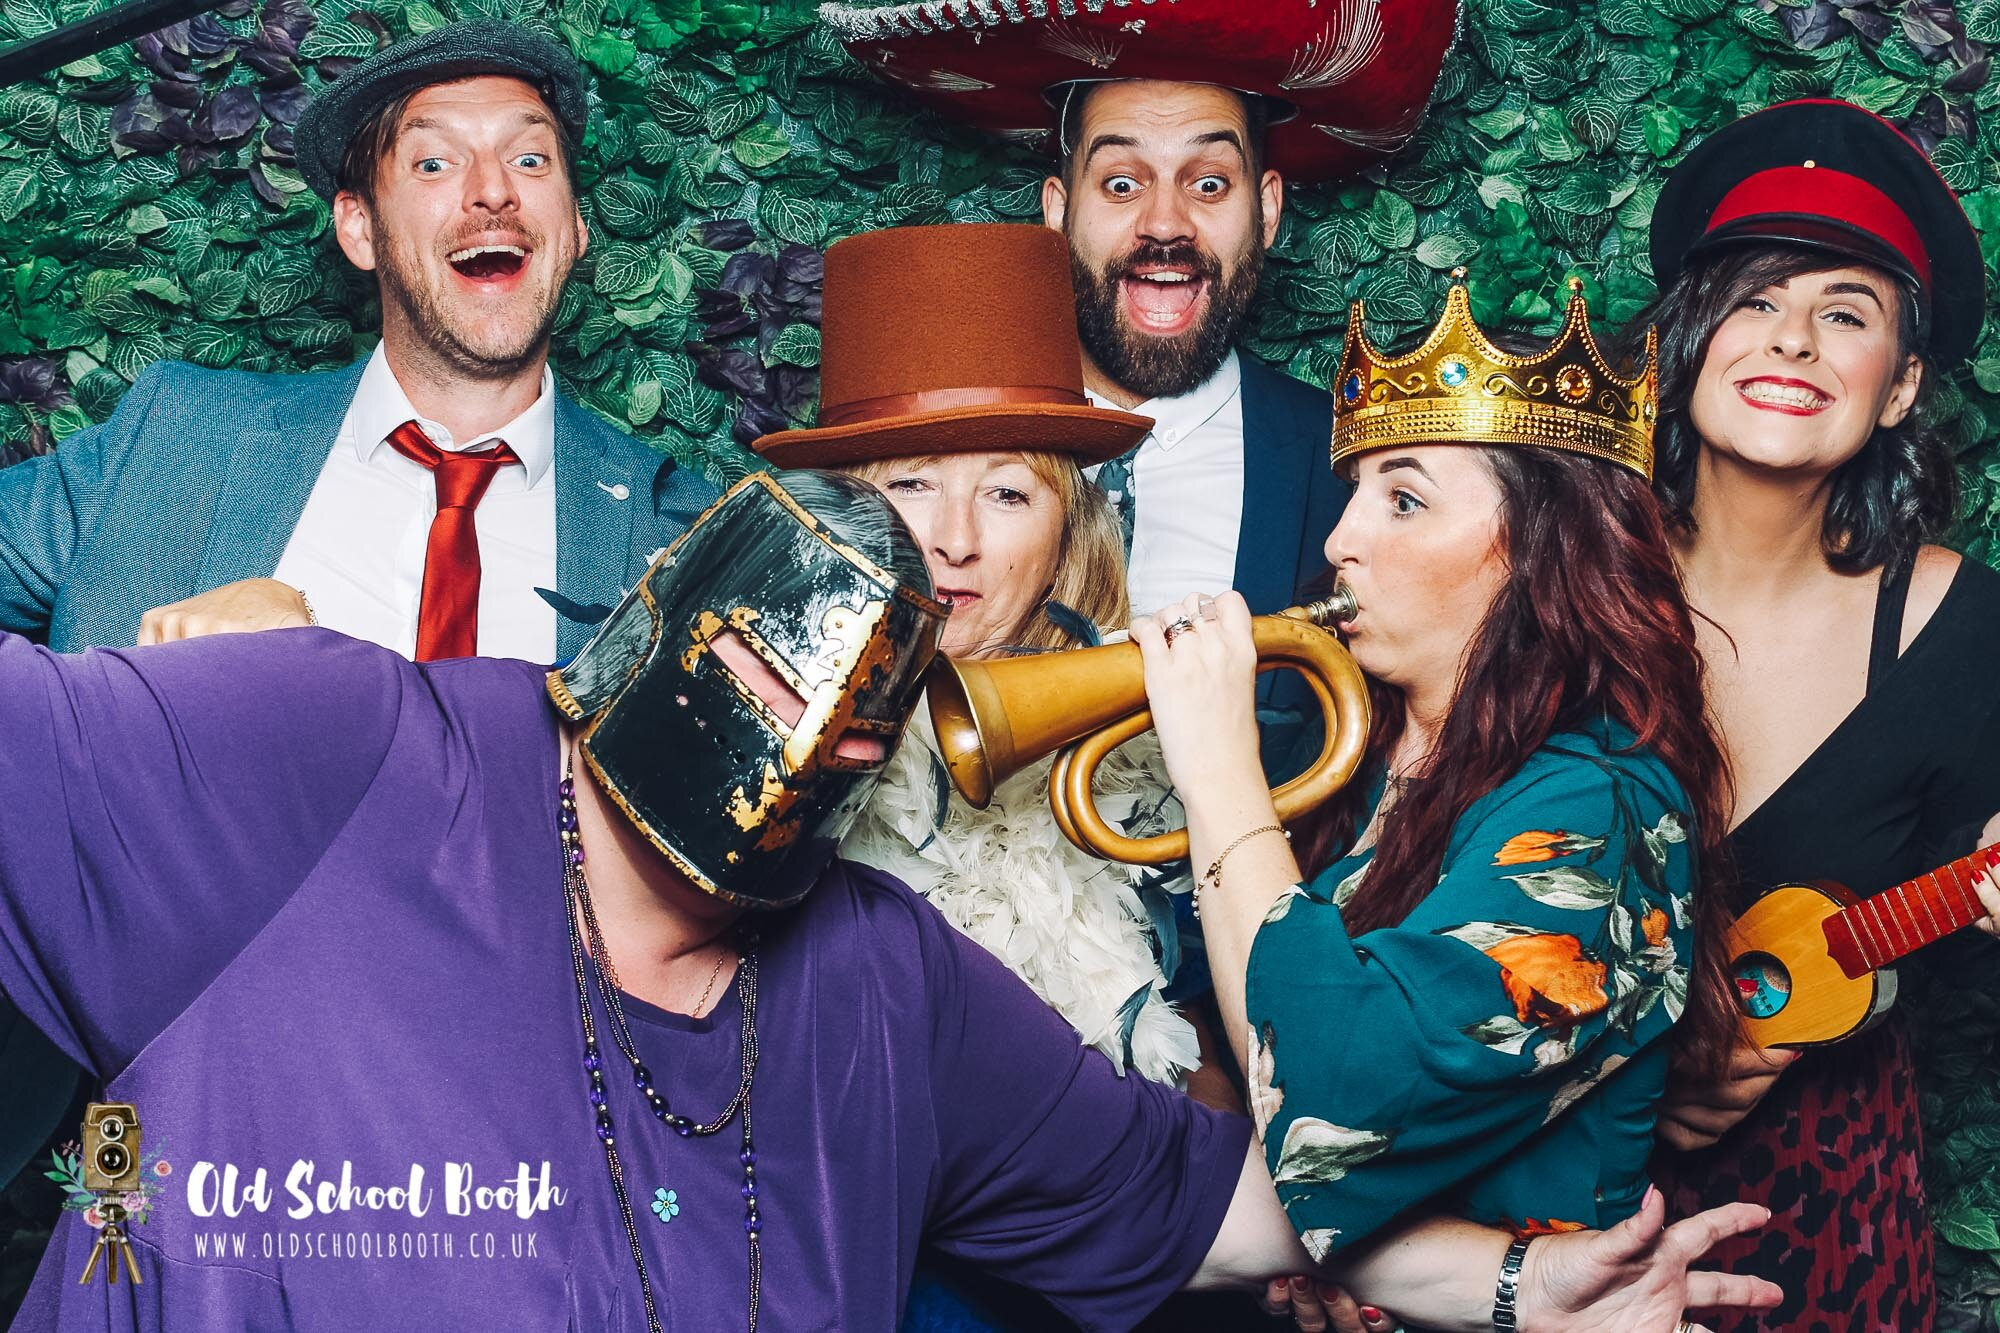 Cheshire Vintage Photo Booth